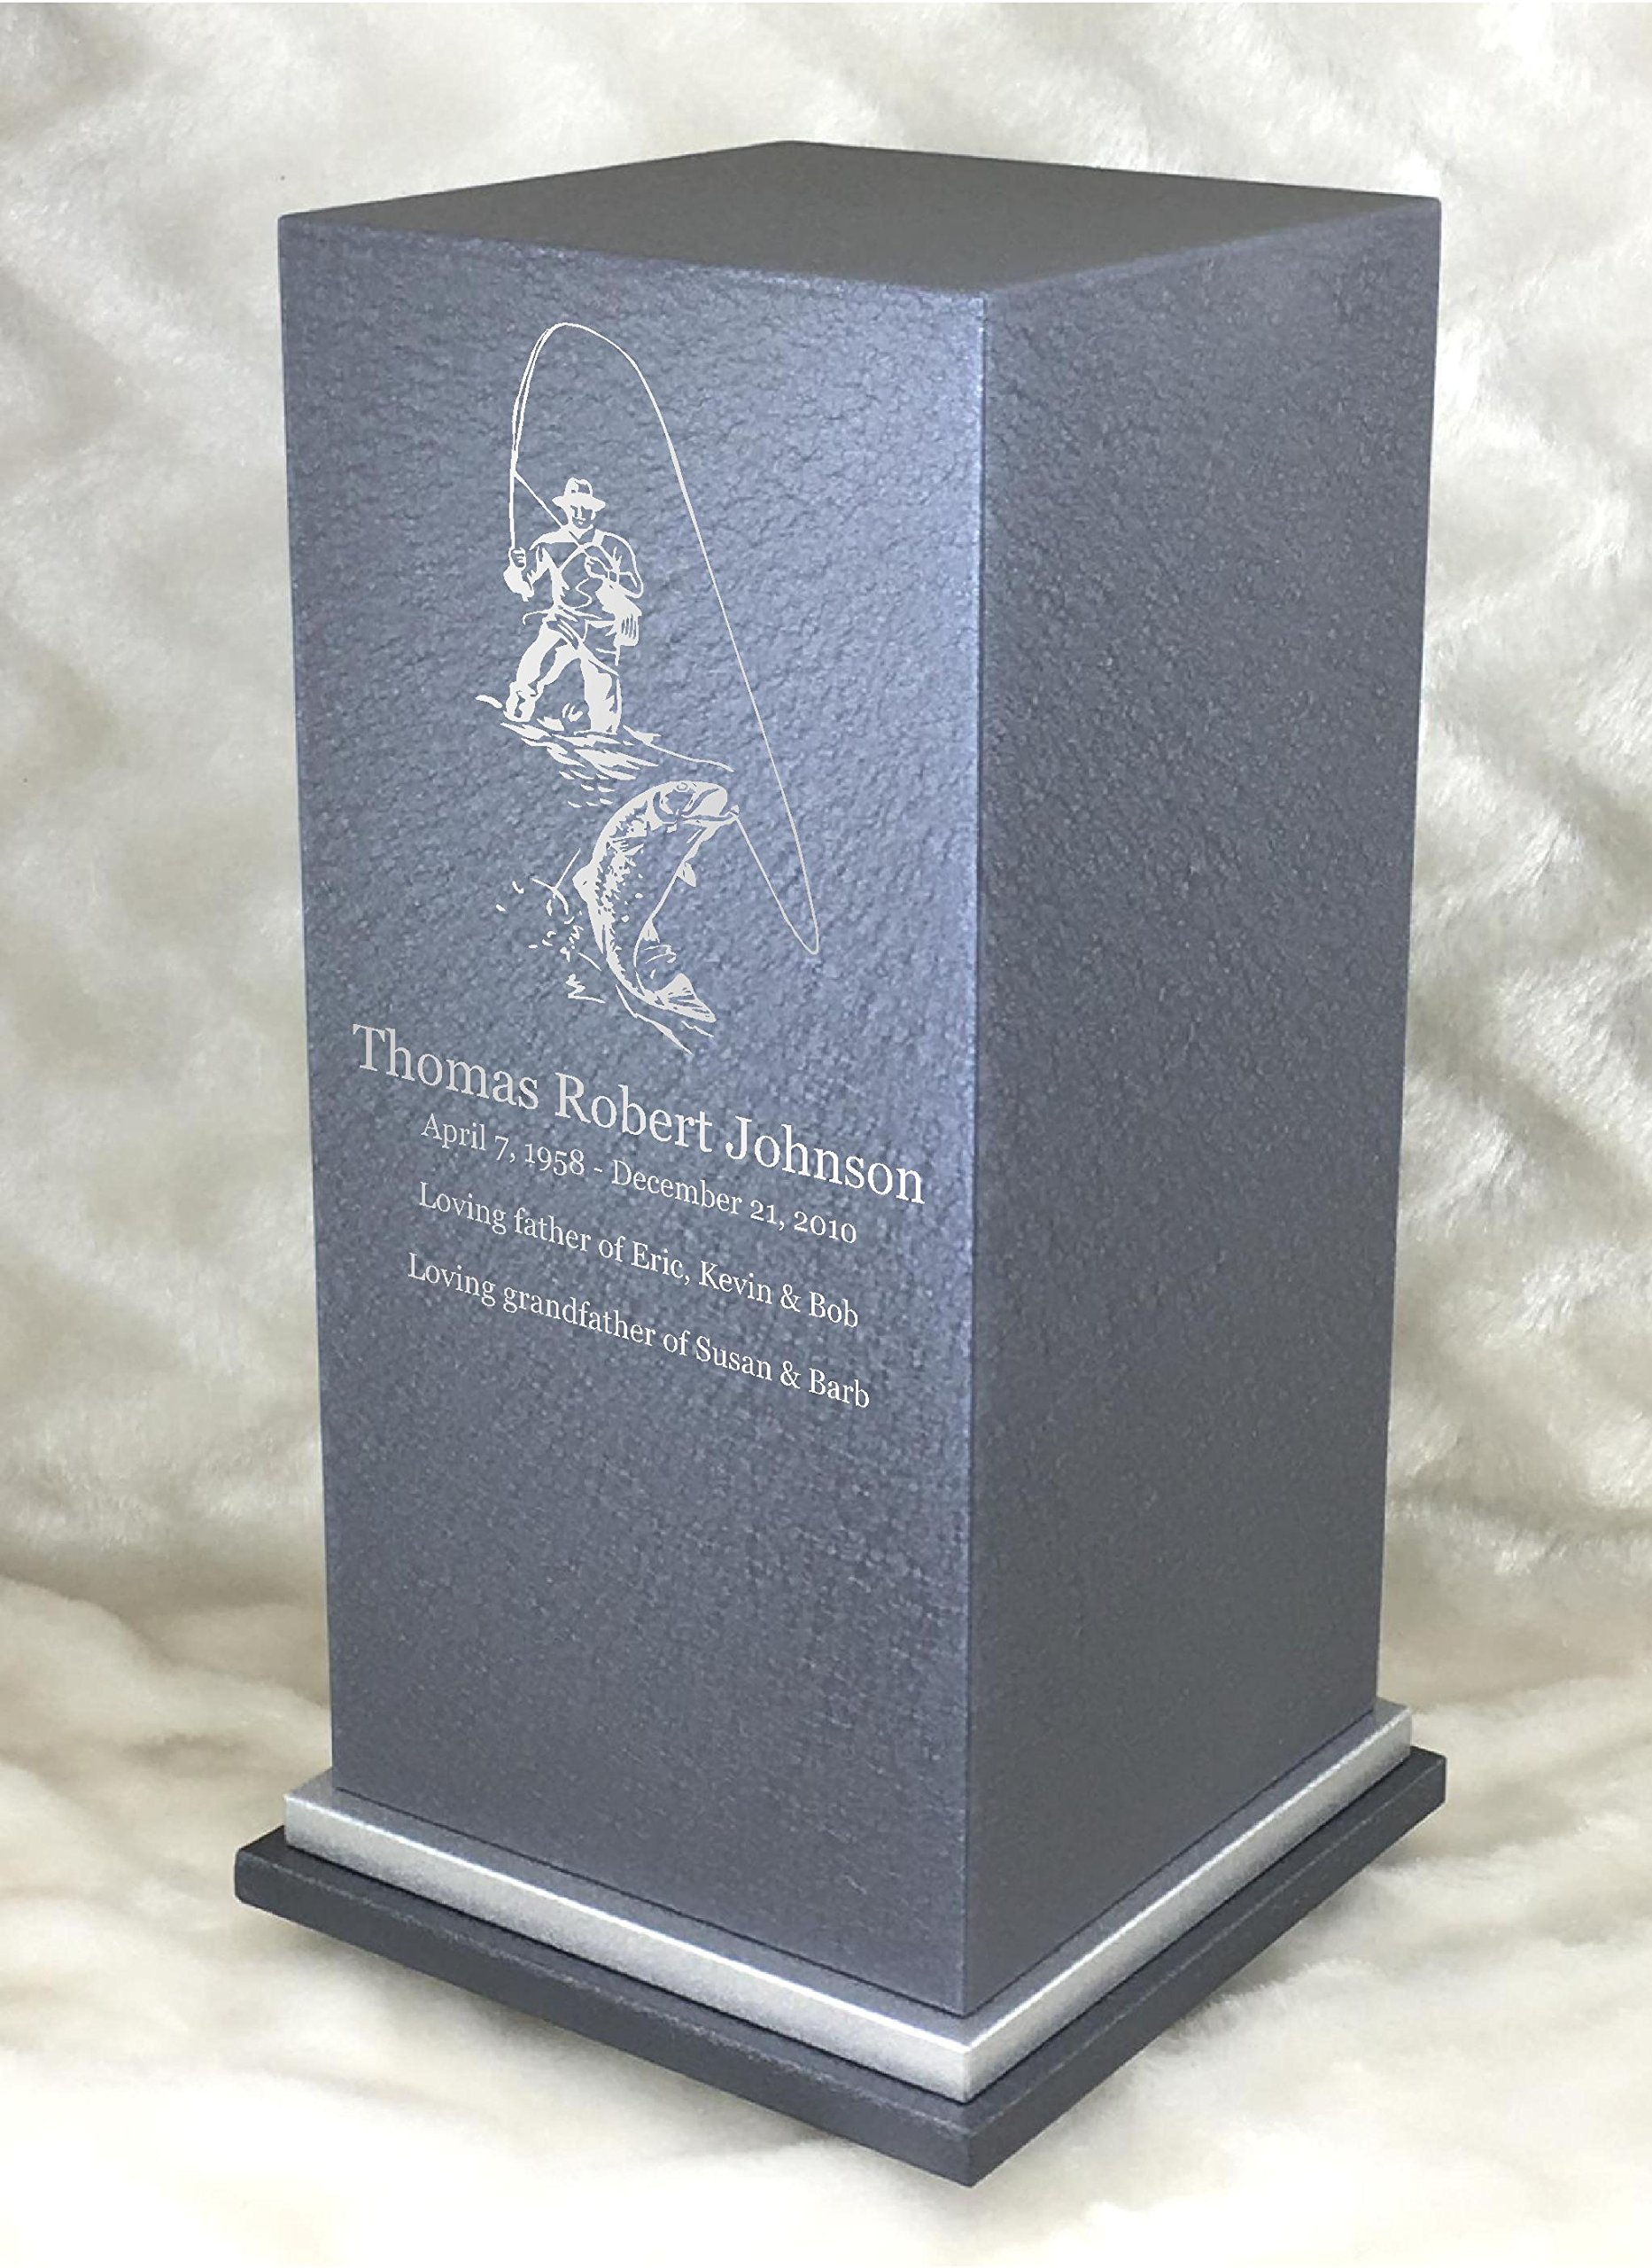 PERSONALIZED Engraved Fisherman Cremation Urn for Human Ashes-Made in America-Handcrafted in the USA by Amaranthine Urns- Adult Funeral Urn up to 200 lbs living weight -Eaton SE- (Slate Grey)